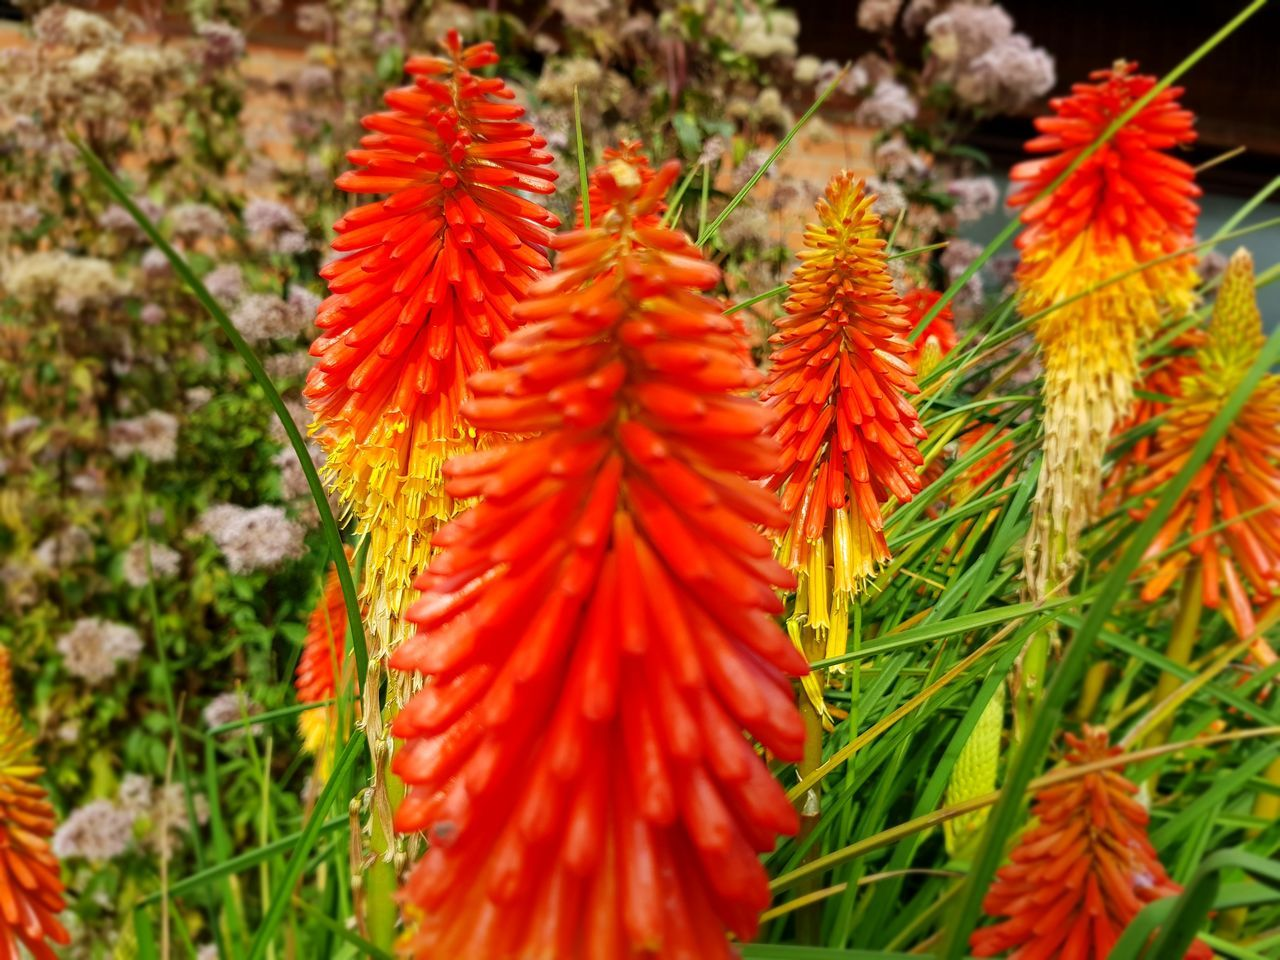 growth, orange color, nature, beauty in nature, red, fragility, plant, day, freshness, flower, no people, outdoors, close-up, leaf, flower head